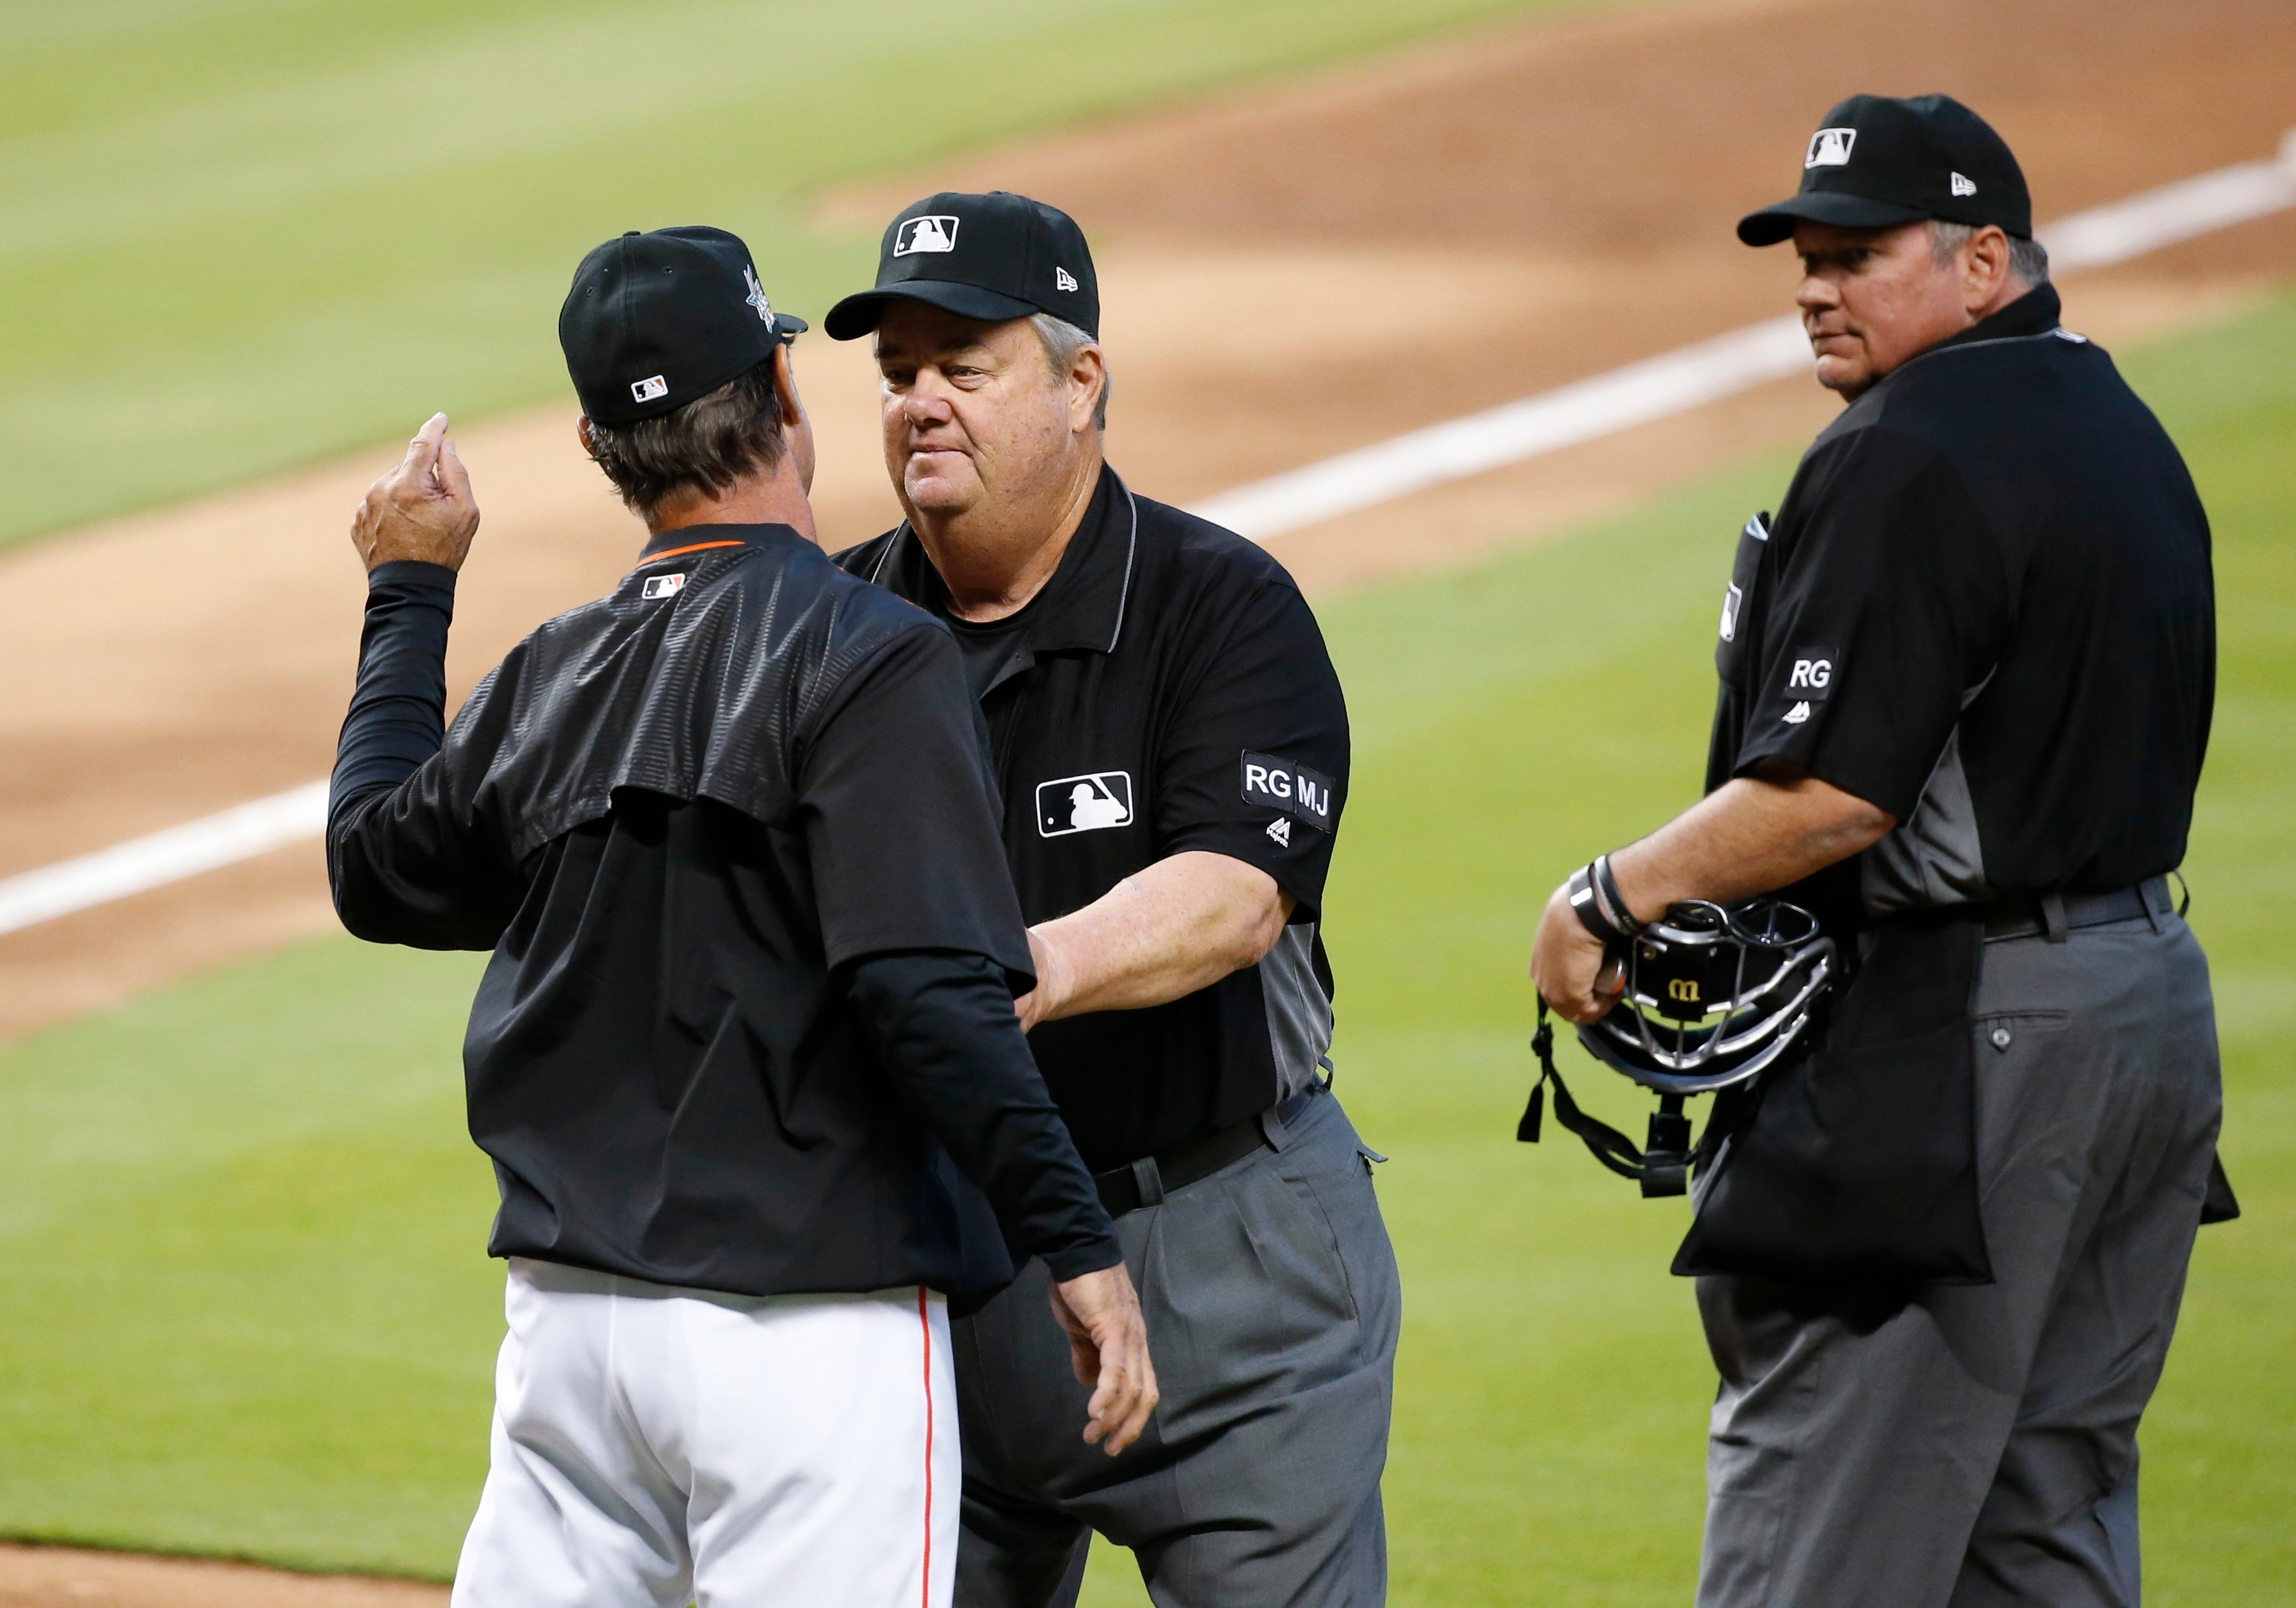 Don Mattingly is held back by third base umpire Joe West, as he argues with home plate umpire Hunter Wendelstedt at the end of the second inning of a baseball game against the St. Louis Cardinals, Monday. (AP Photo/Wilfredo Lee)